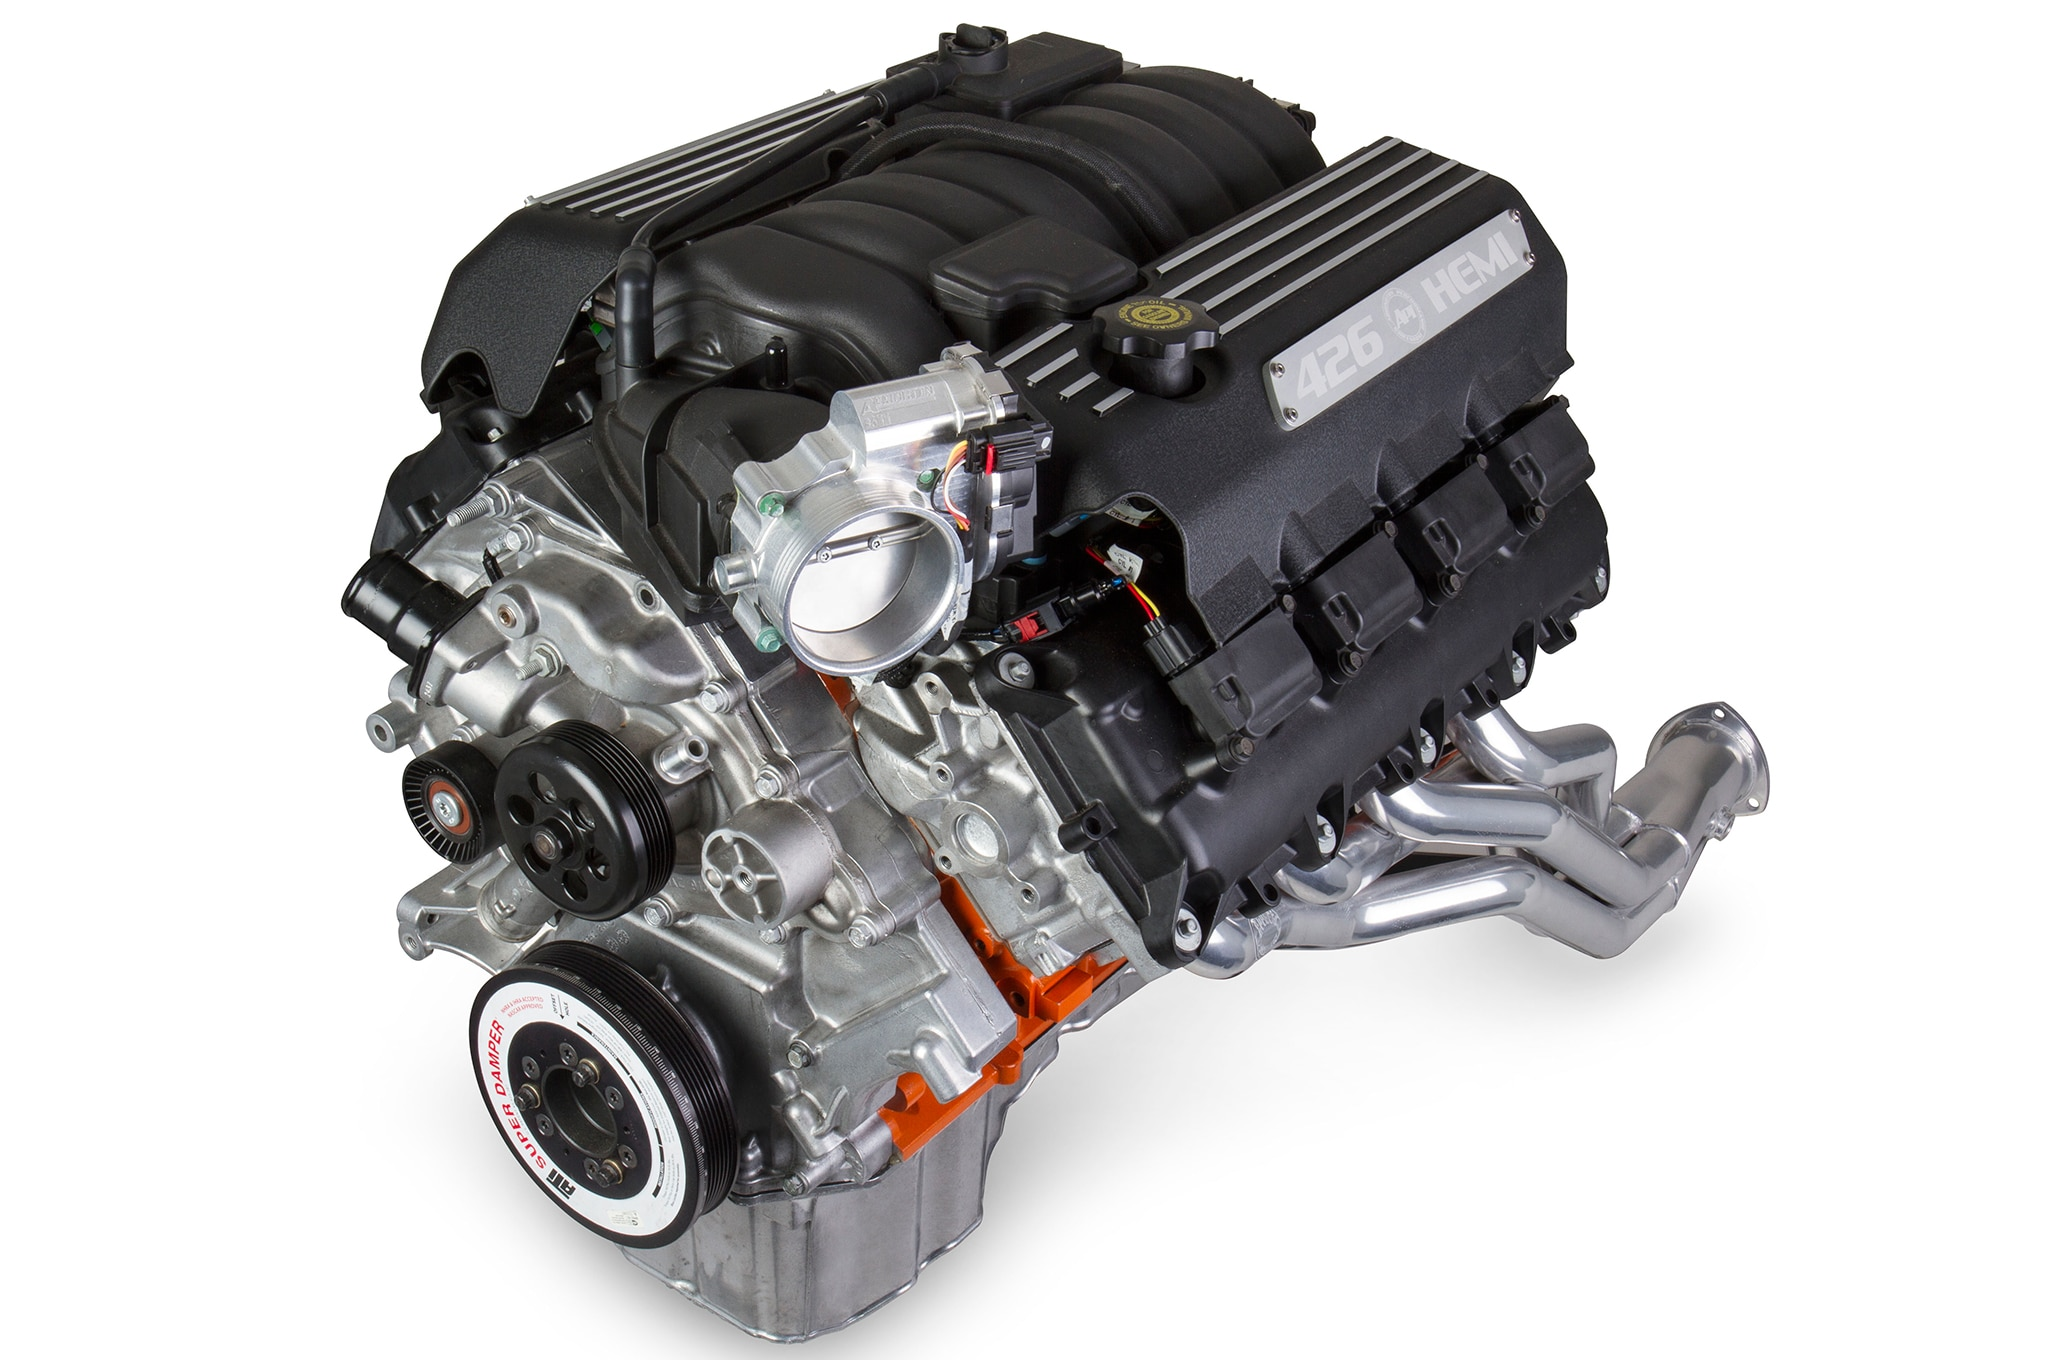 hemi engine swaps made simple with new holley efi harness hot rodhemi engine swaps made [ 2048 x 1360 Pixel ]